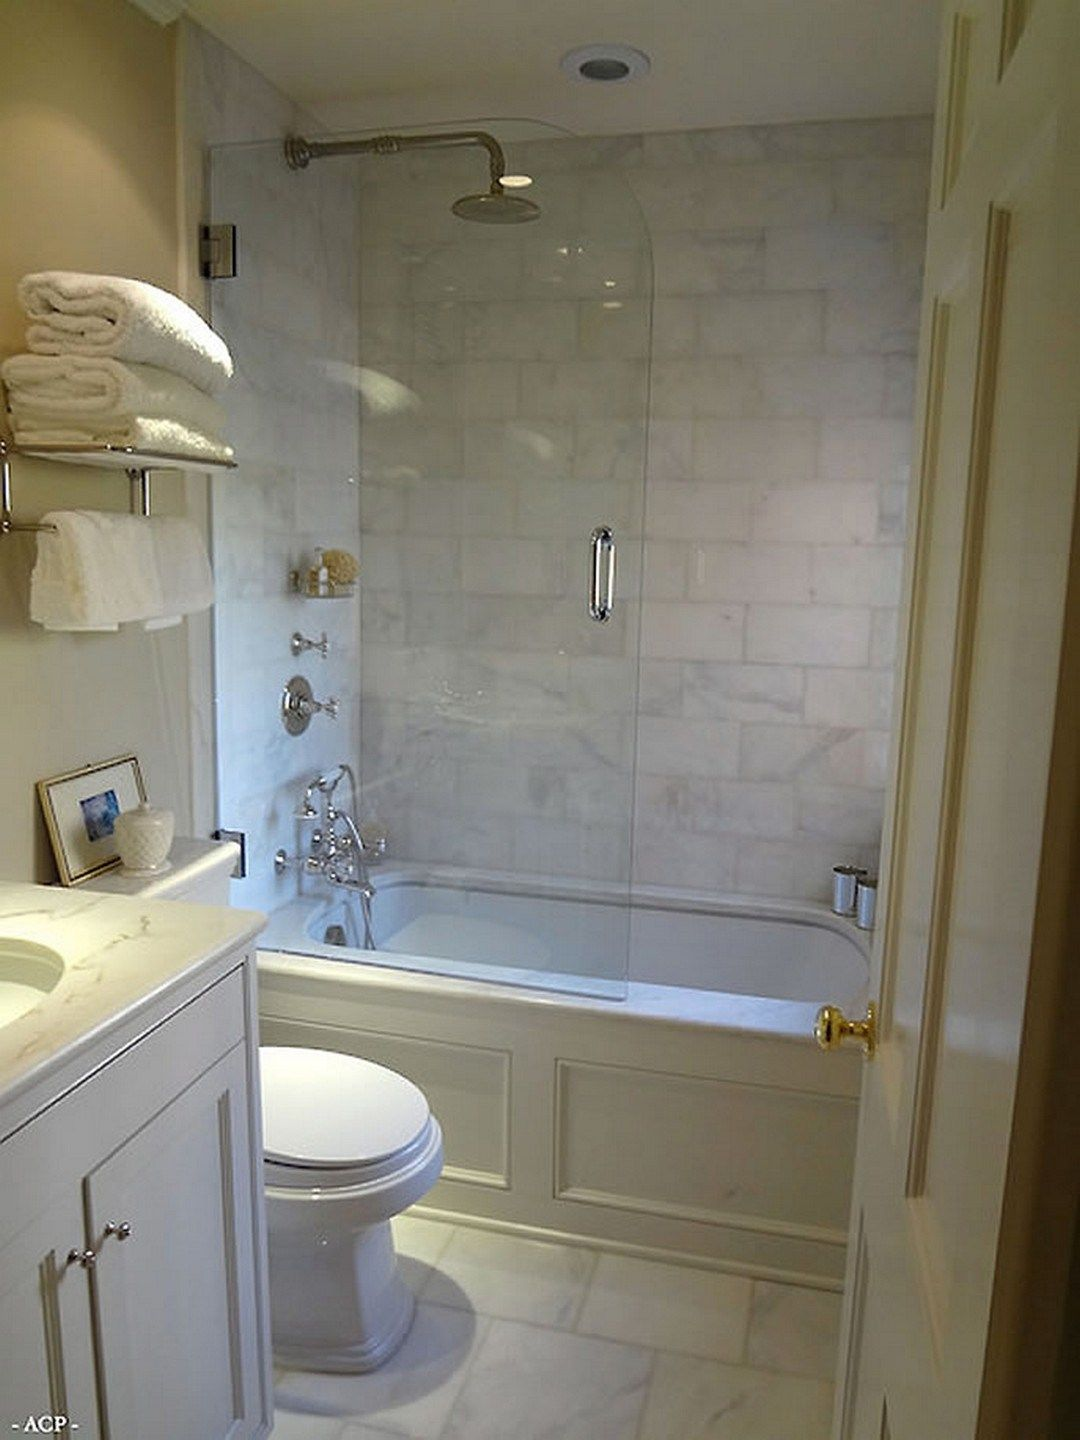 99 Small Master Bathroom Makeover Ideas On A Budget 79 Adorable Updating A Small Bathroom On A Budget Decorating Inspiration